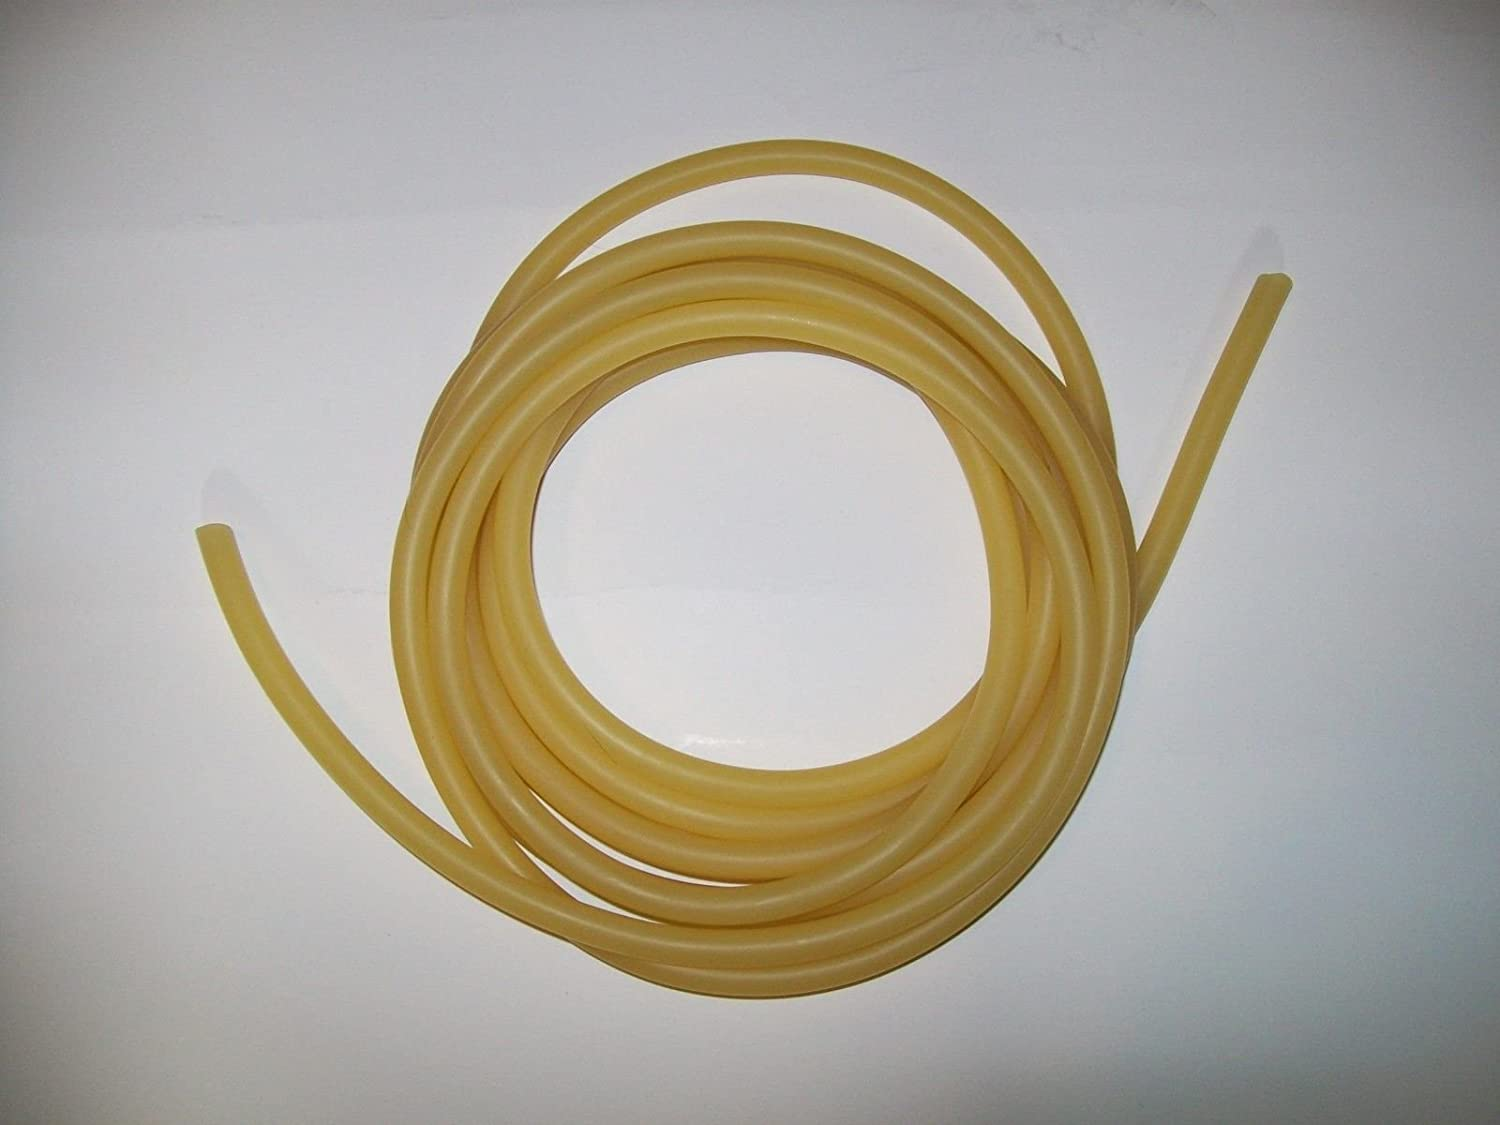 OutletBestSelling 5//16 I.D x 1//16 w x 7//16 O.D  5 feet SURGICAL LATEX RUBBER TUBING AMBER